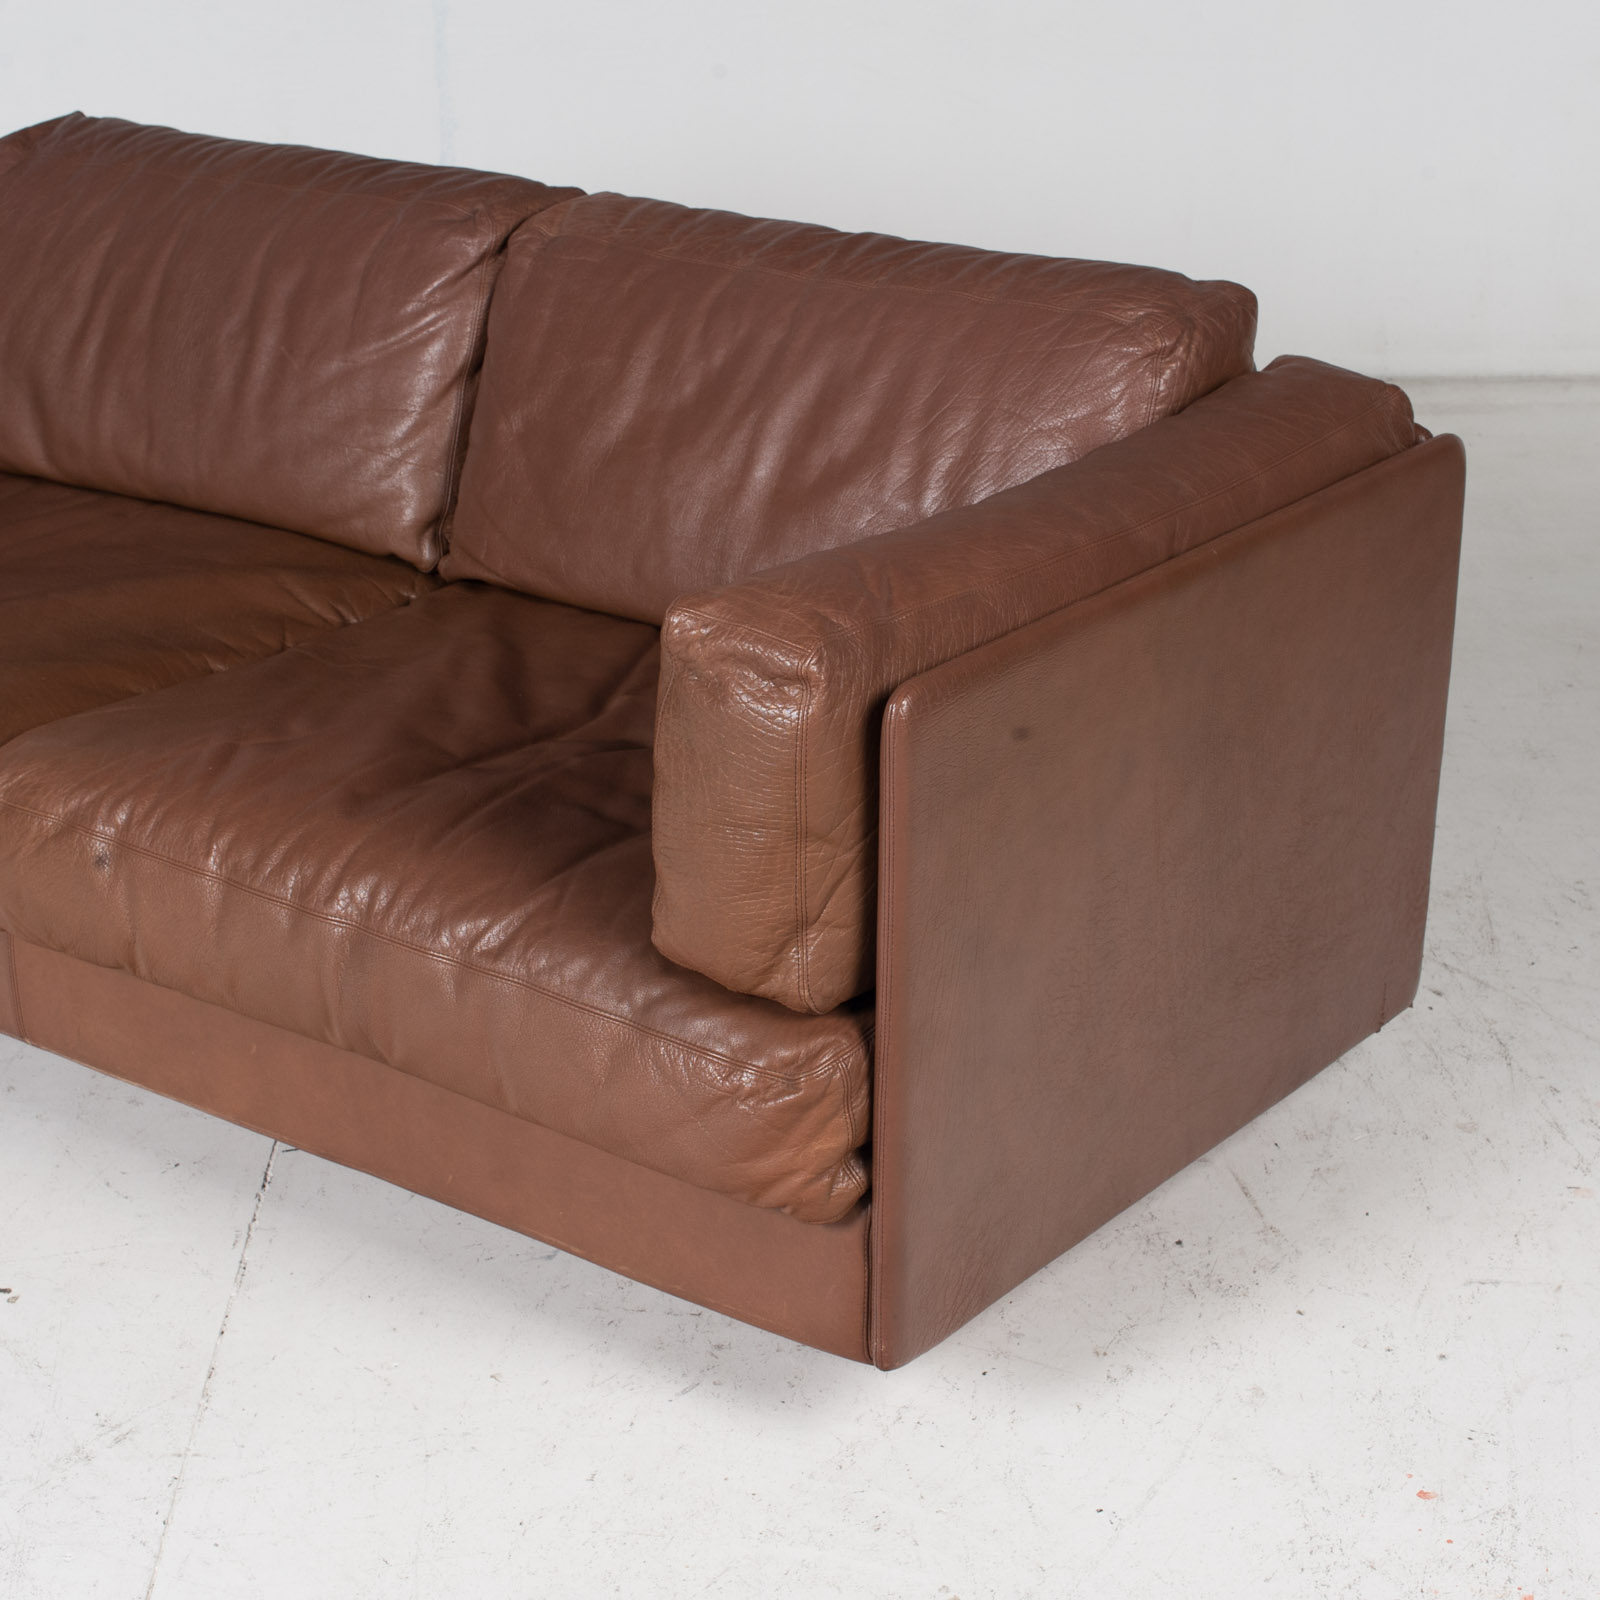 2 Seater Sofa In Brown Leather, 1960s, Switzerland 6